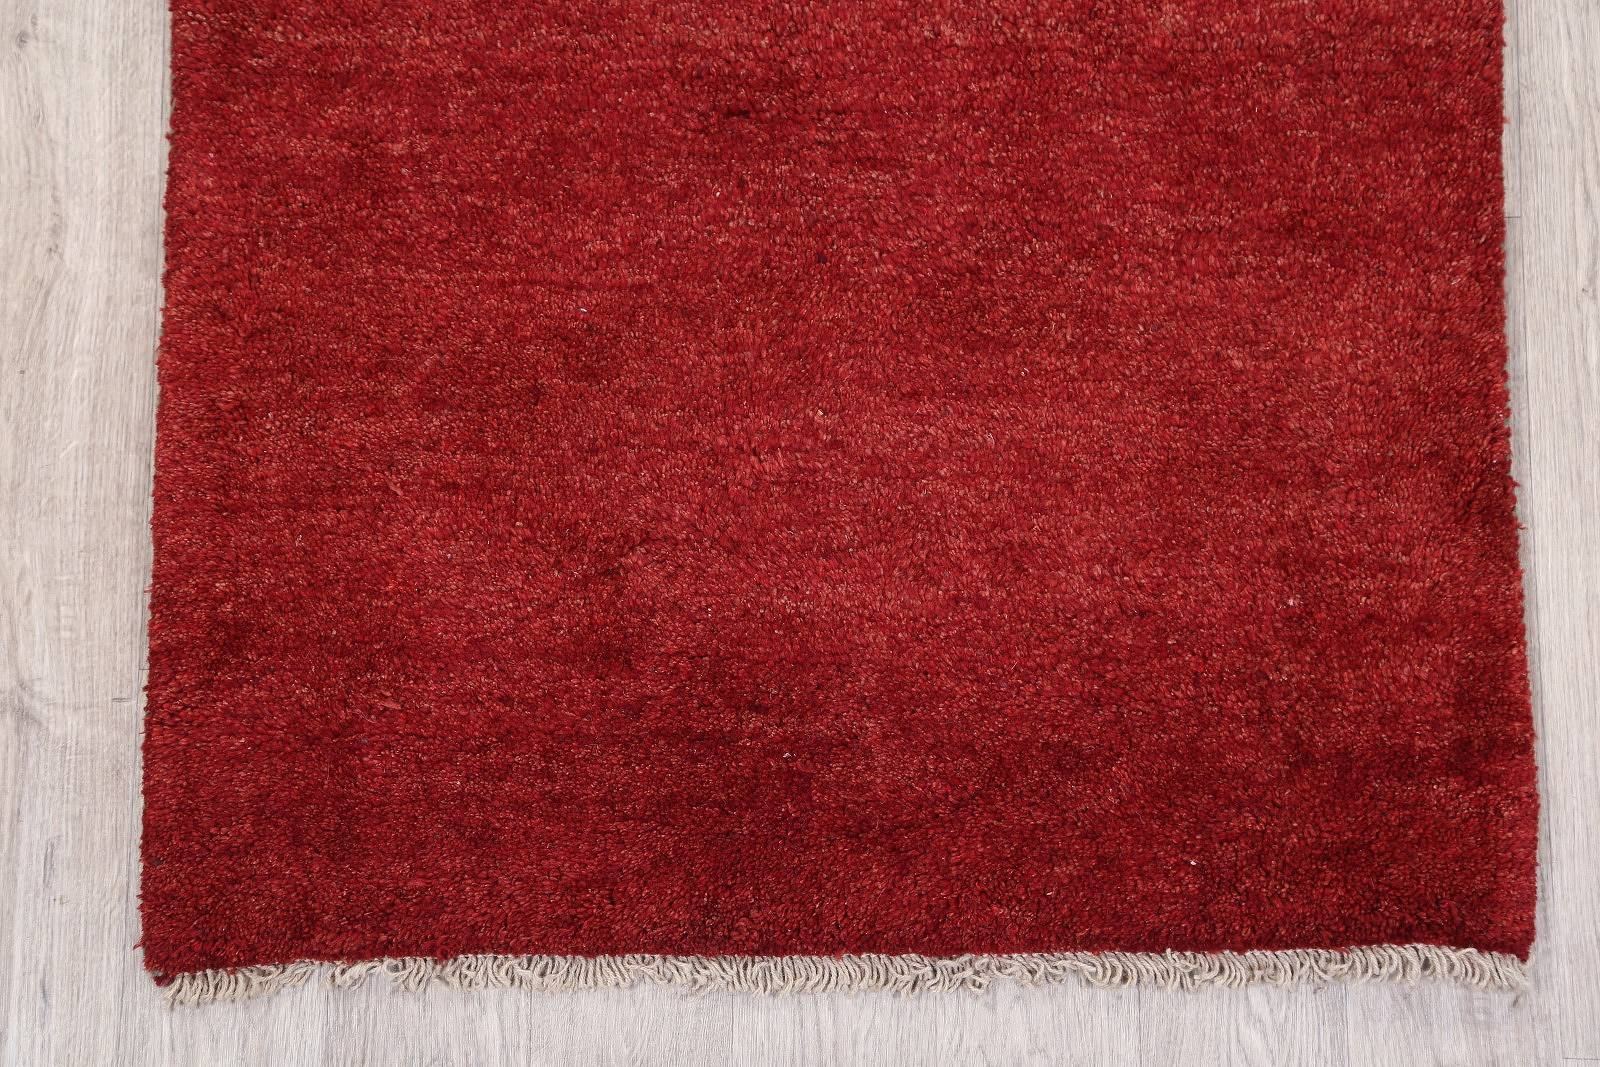 Soft Plush Thick Pile 3x5 Gabbeh Shiraz Persian Area Rug